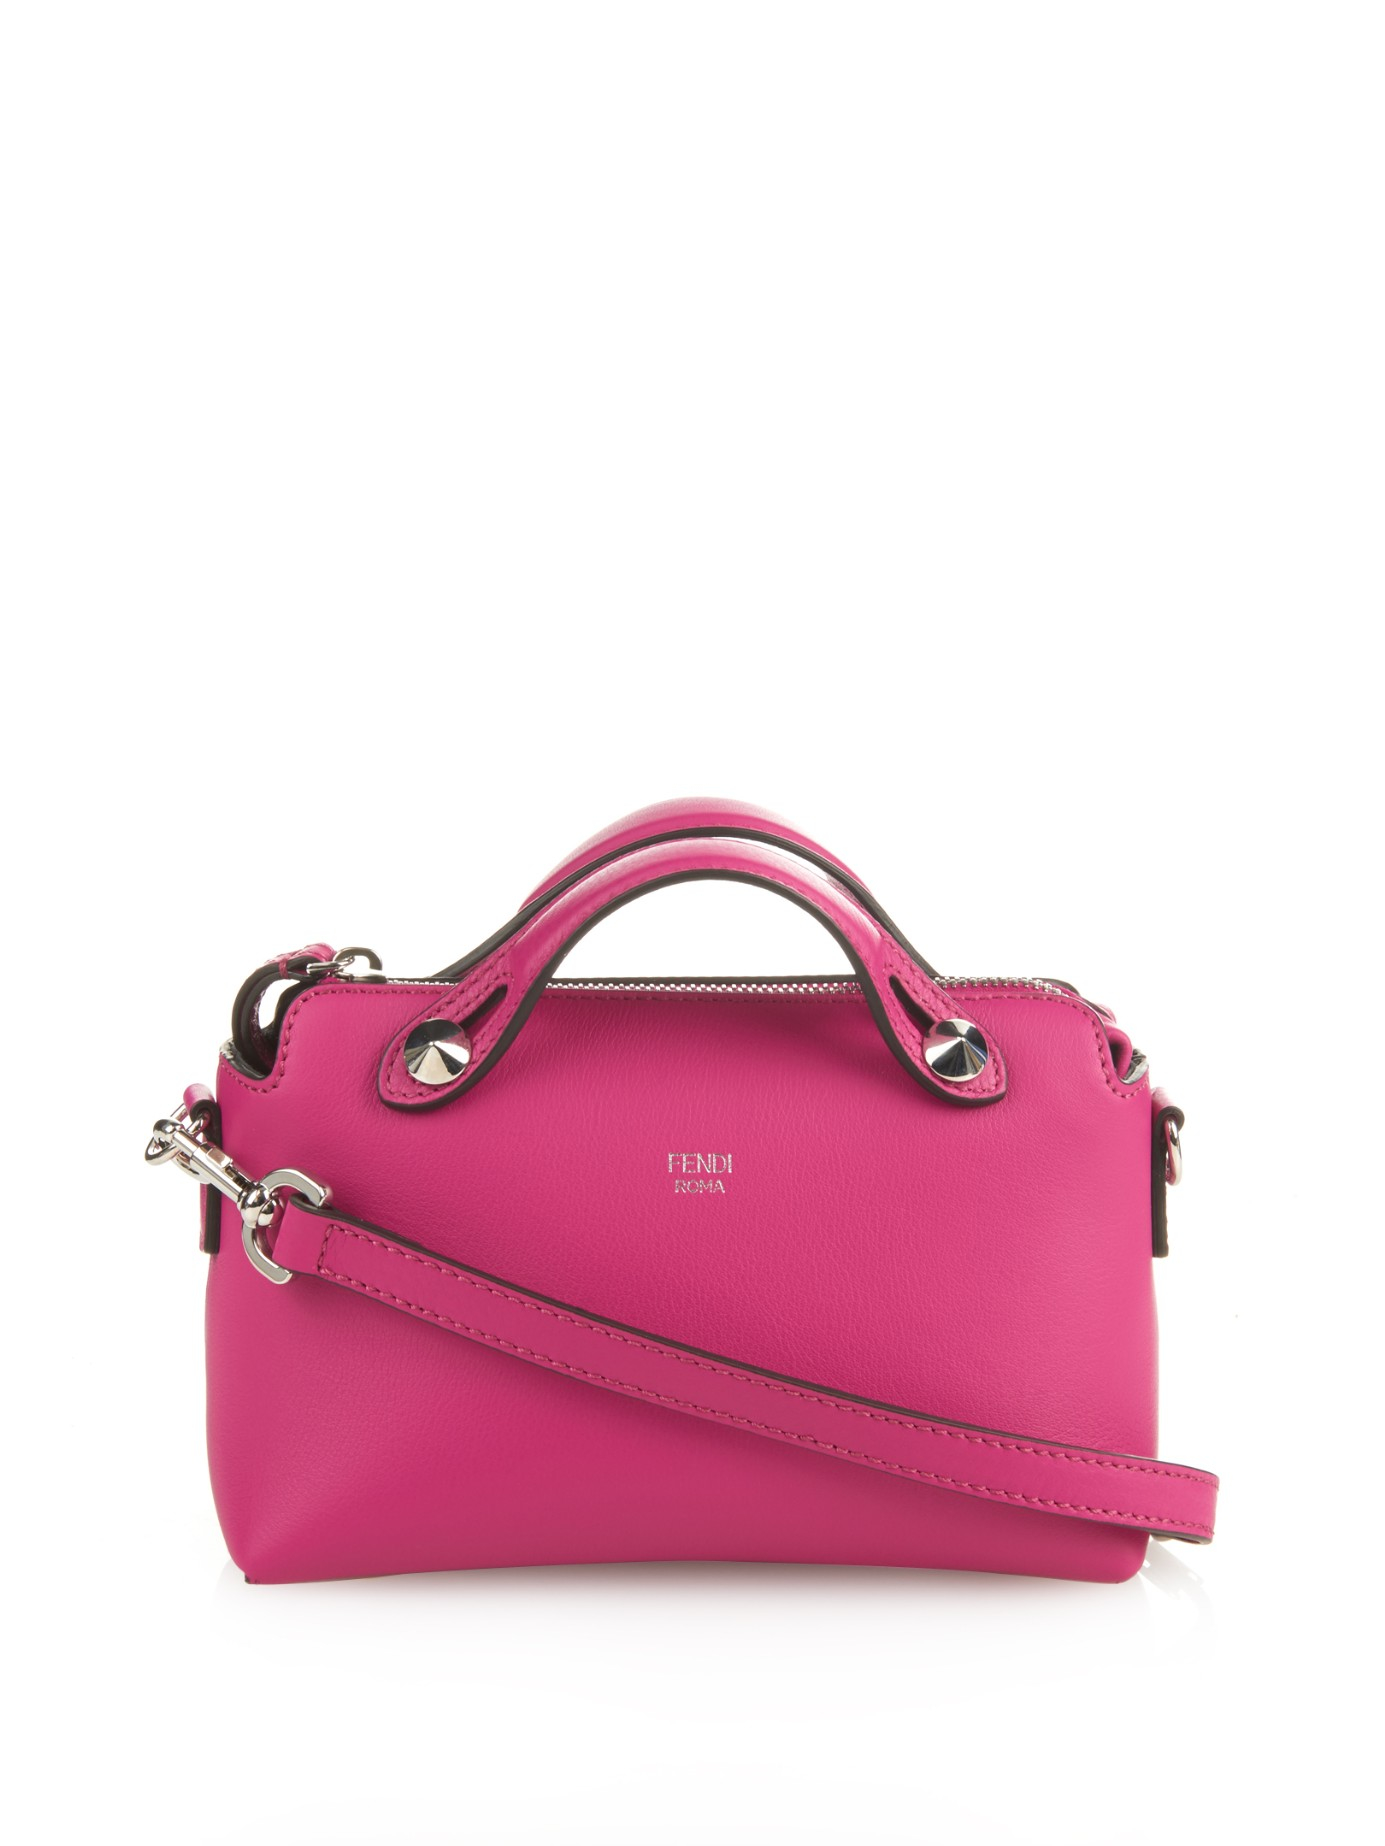 26861a9bd8b8 Fendi By The Way Mini Leather Cross-Body Bag in Pink - Lyst